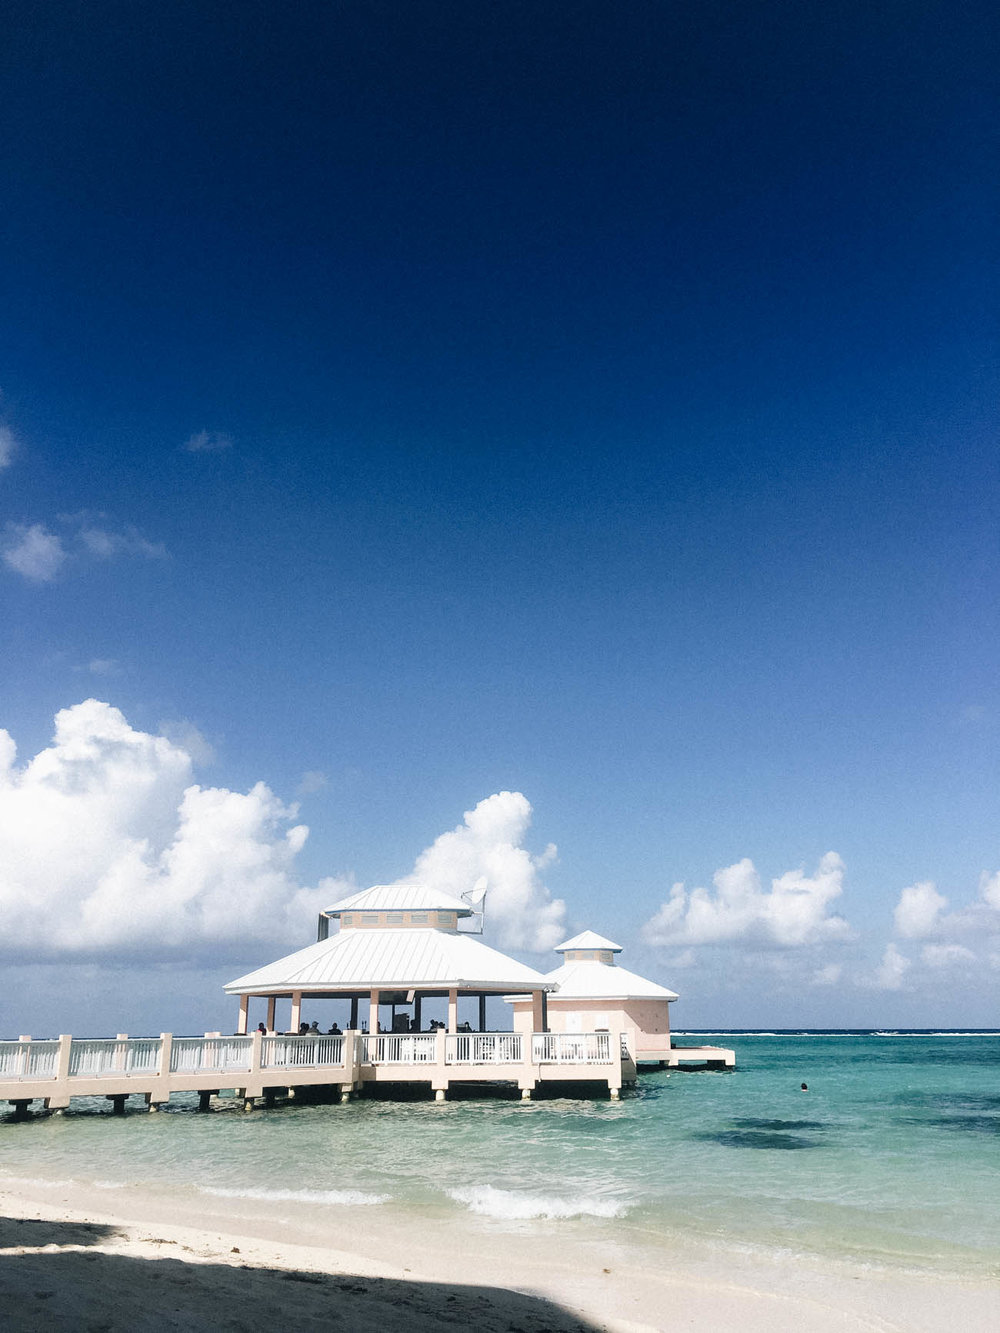 Cayman Islands Travel Guide via Birdie Shoots